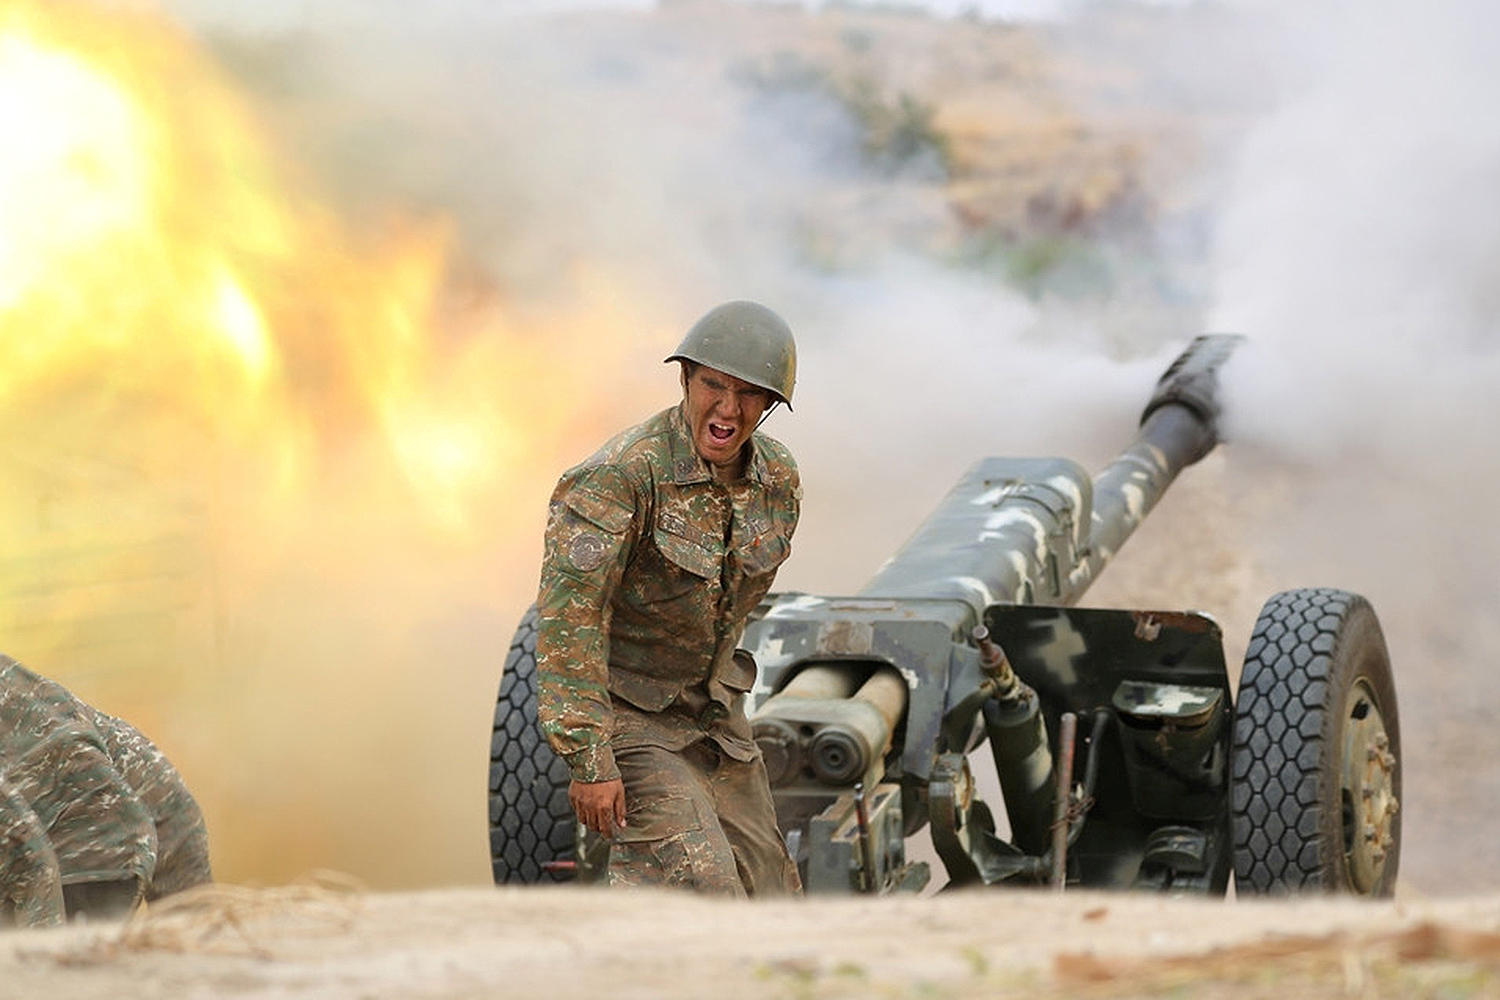 An ethnic Armenian soldier fires an artillery piece during fighting with Azerbaijan's forces in the breakaway region of Nagorno-Karabakh on Sept. 29. Defence Ministry of Armenia/Handout via REUTERS